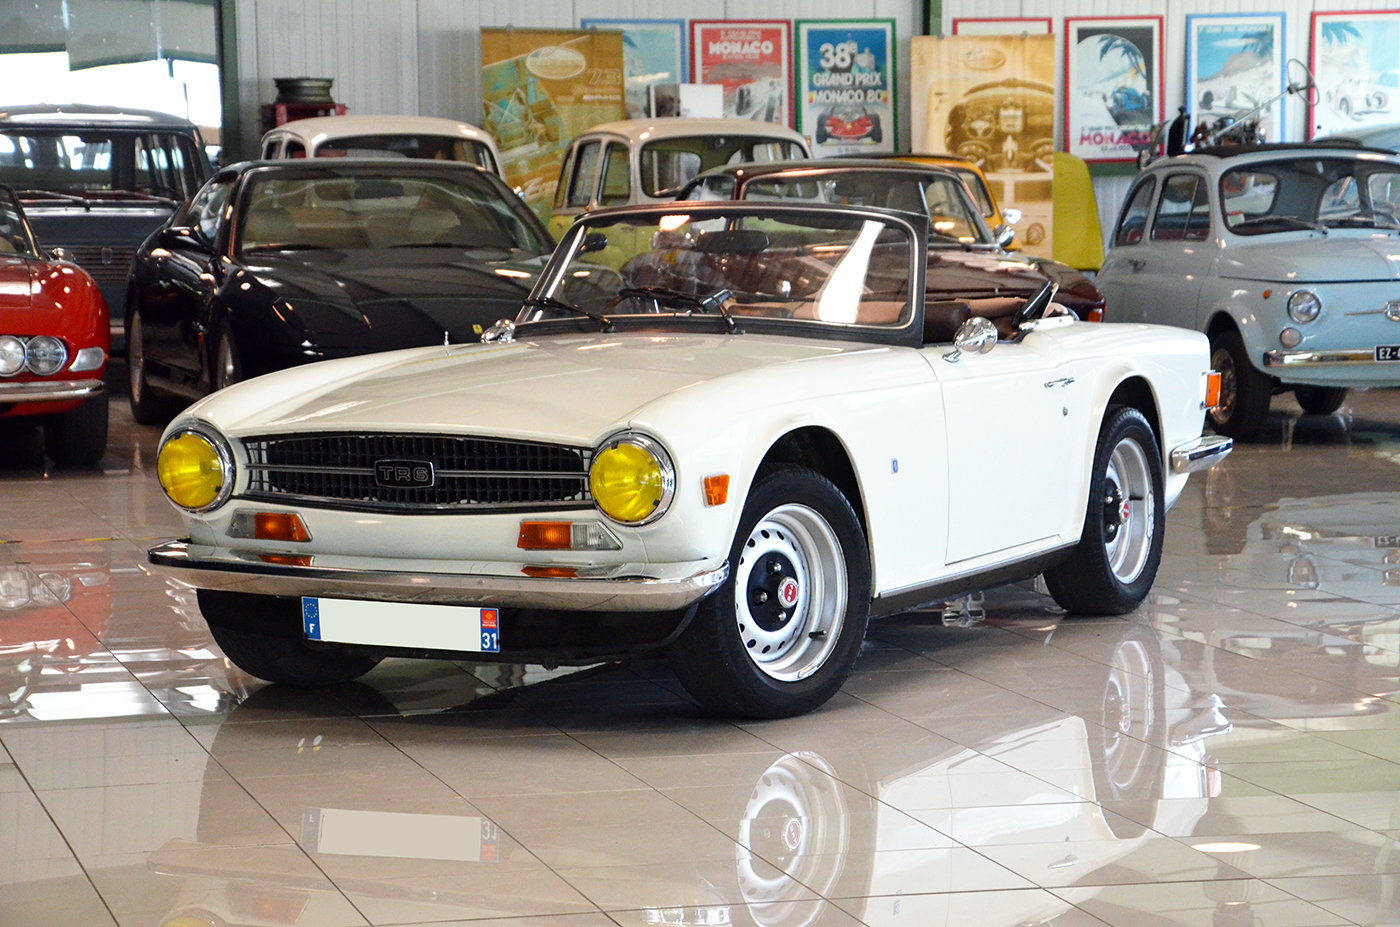 1973 Triumph TR6 - RHD - Superb + Hard top For Sale (picture 1 of 6)